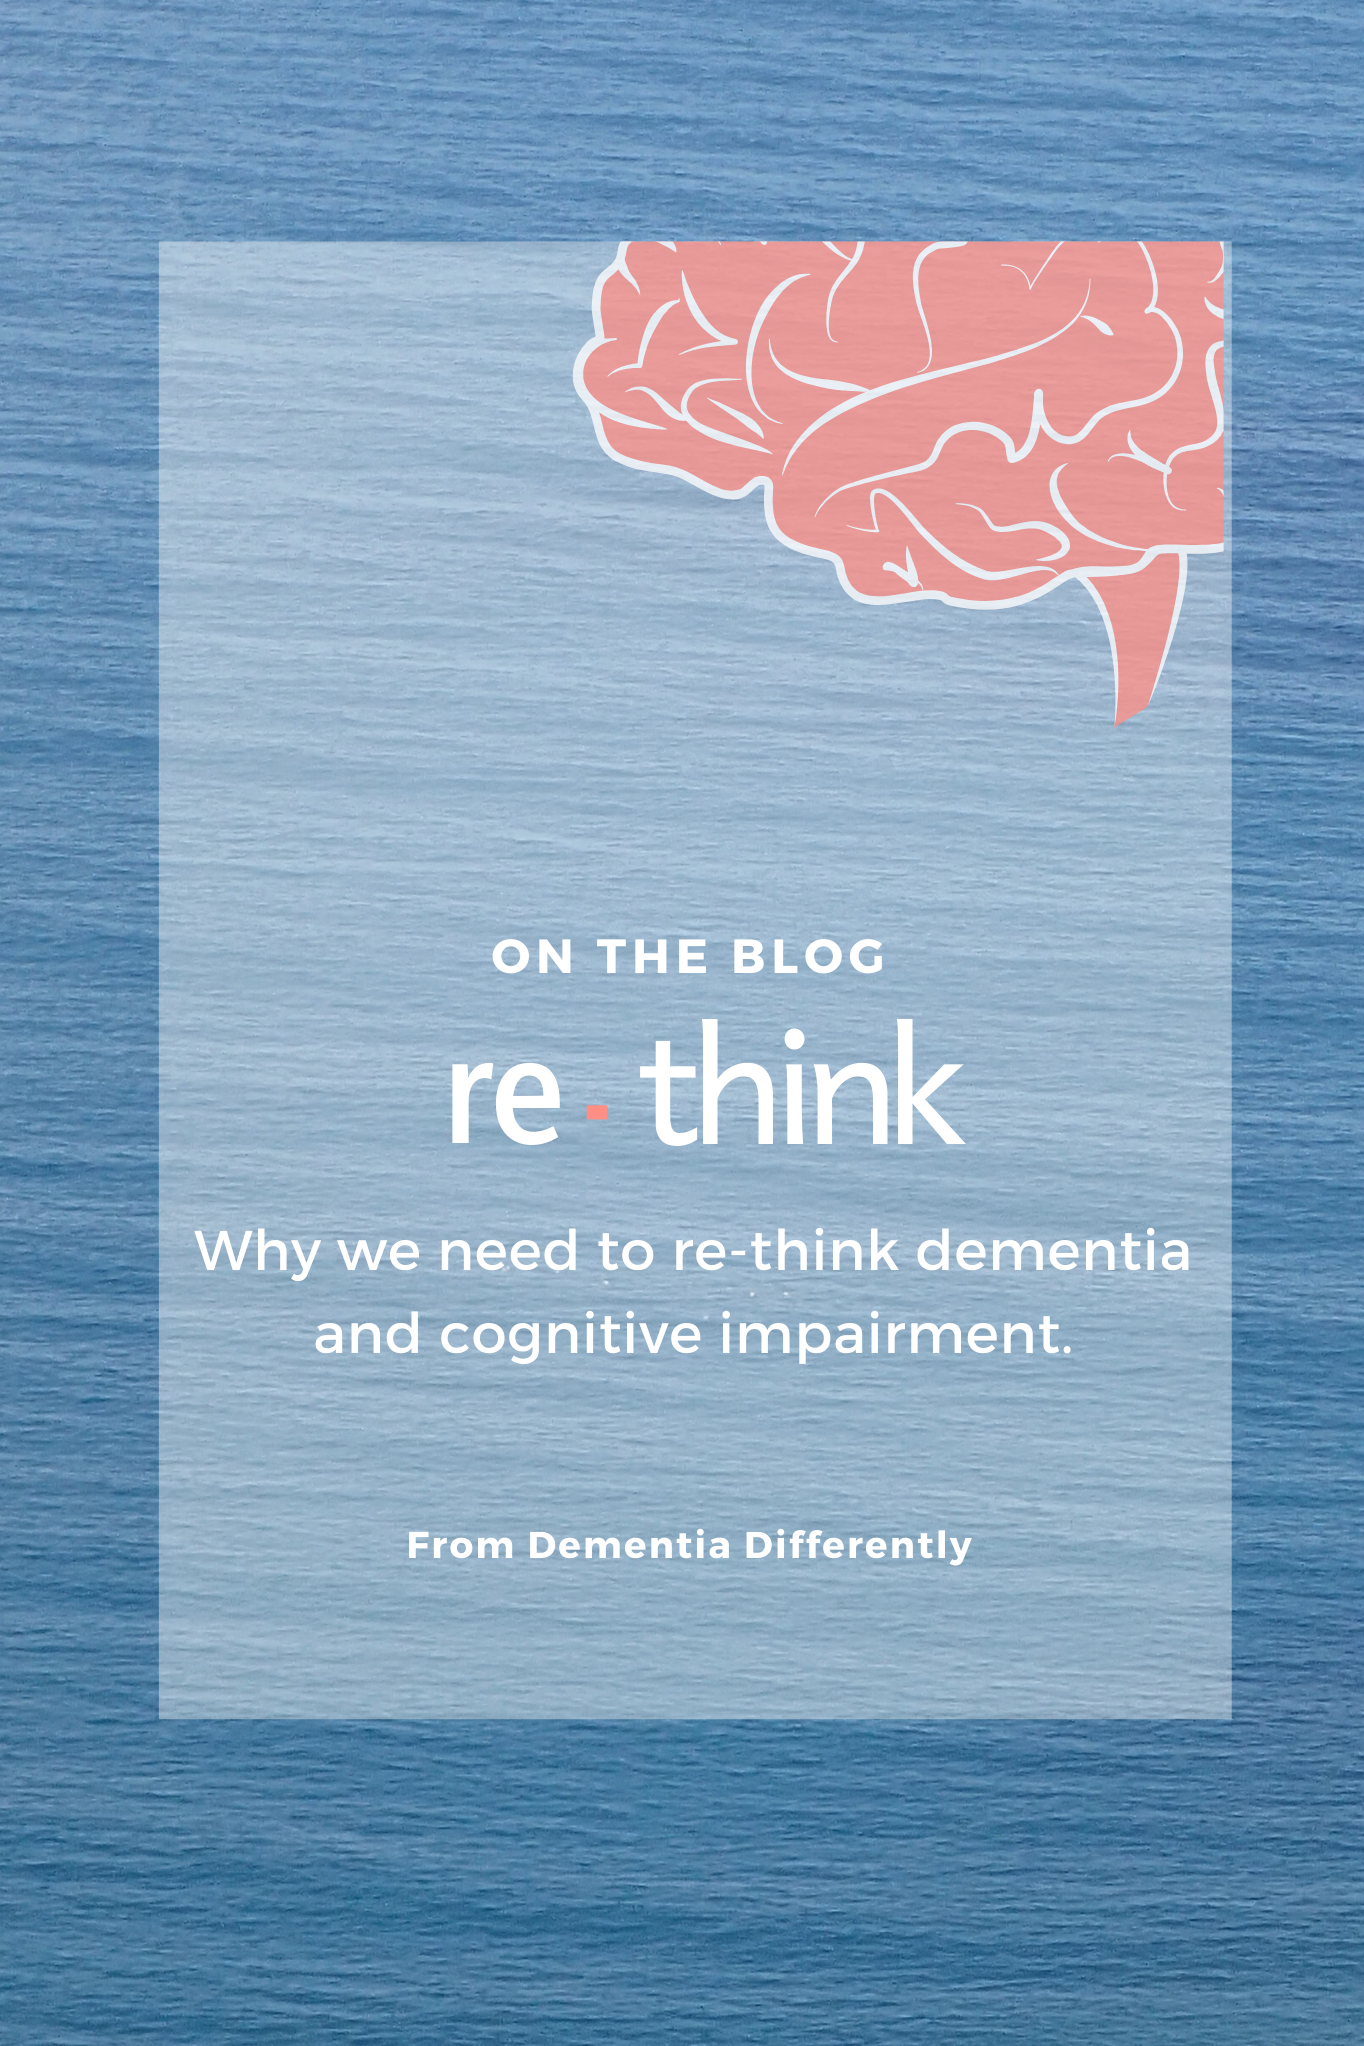 subscribe to our blog: re-think: why we need to re-think dementia and cognitive impairment.